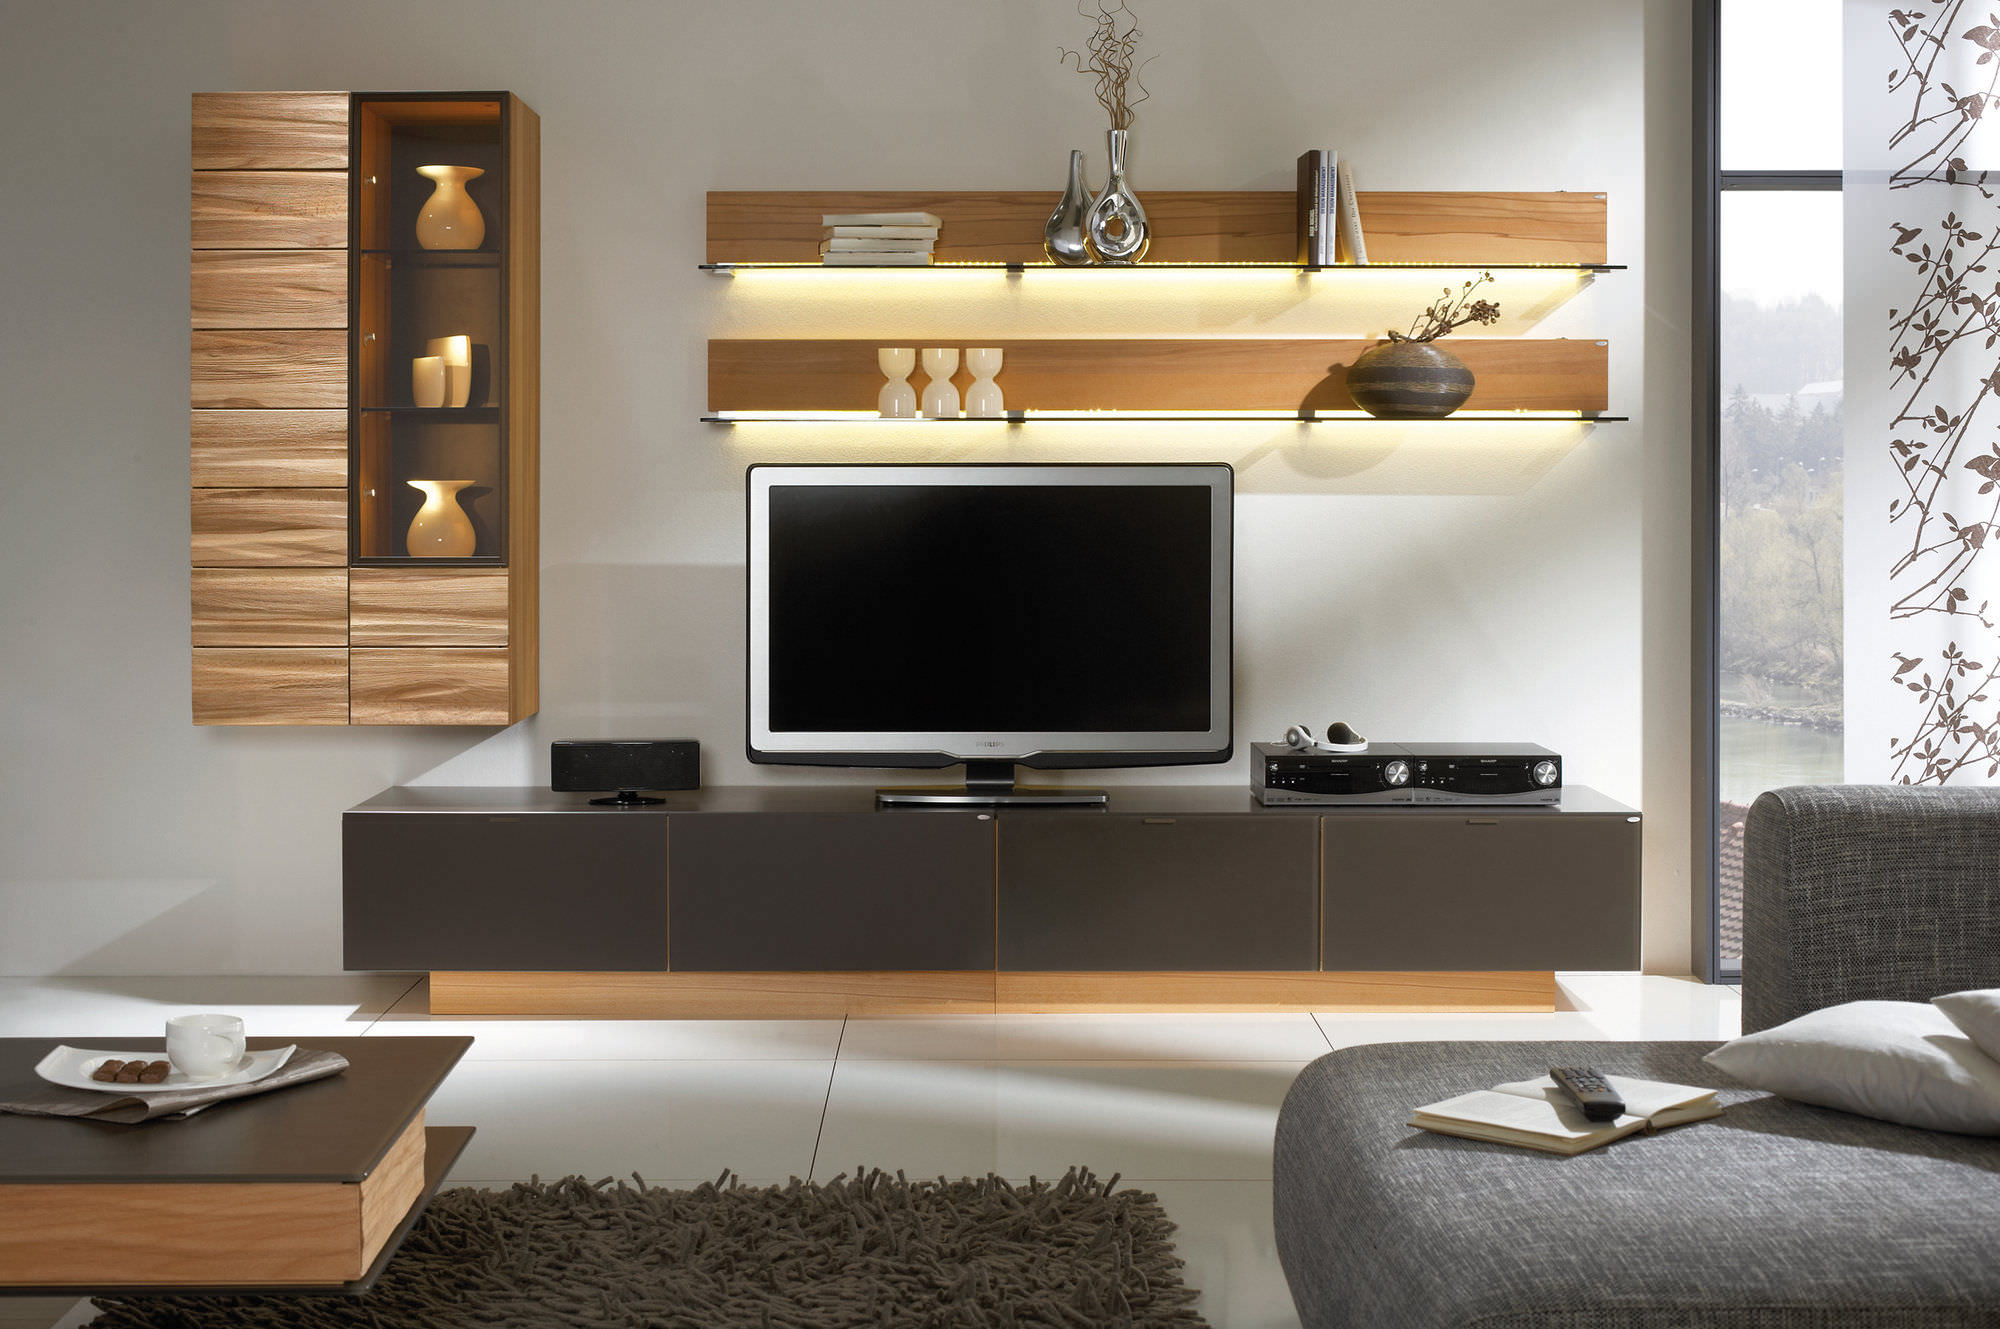 20 modern tv unit design ideas for bedroom living room for Living rooms ideas for small space